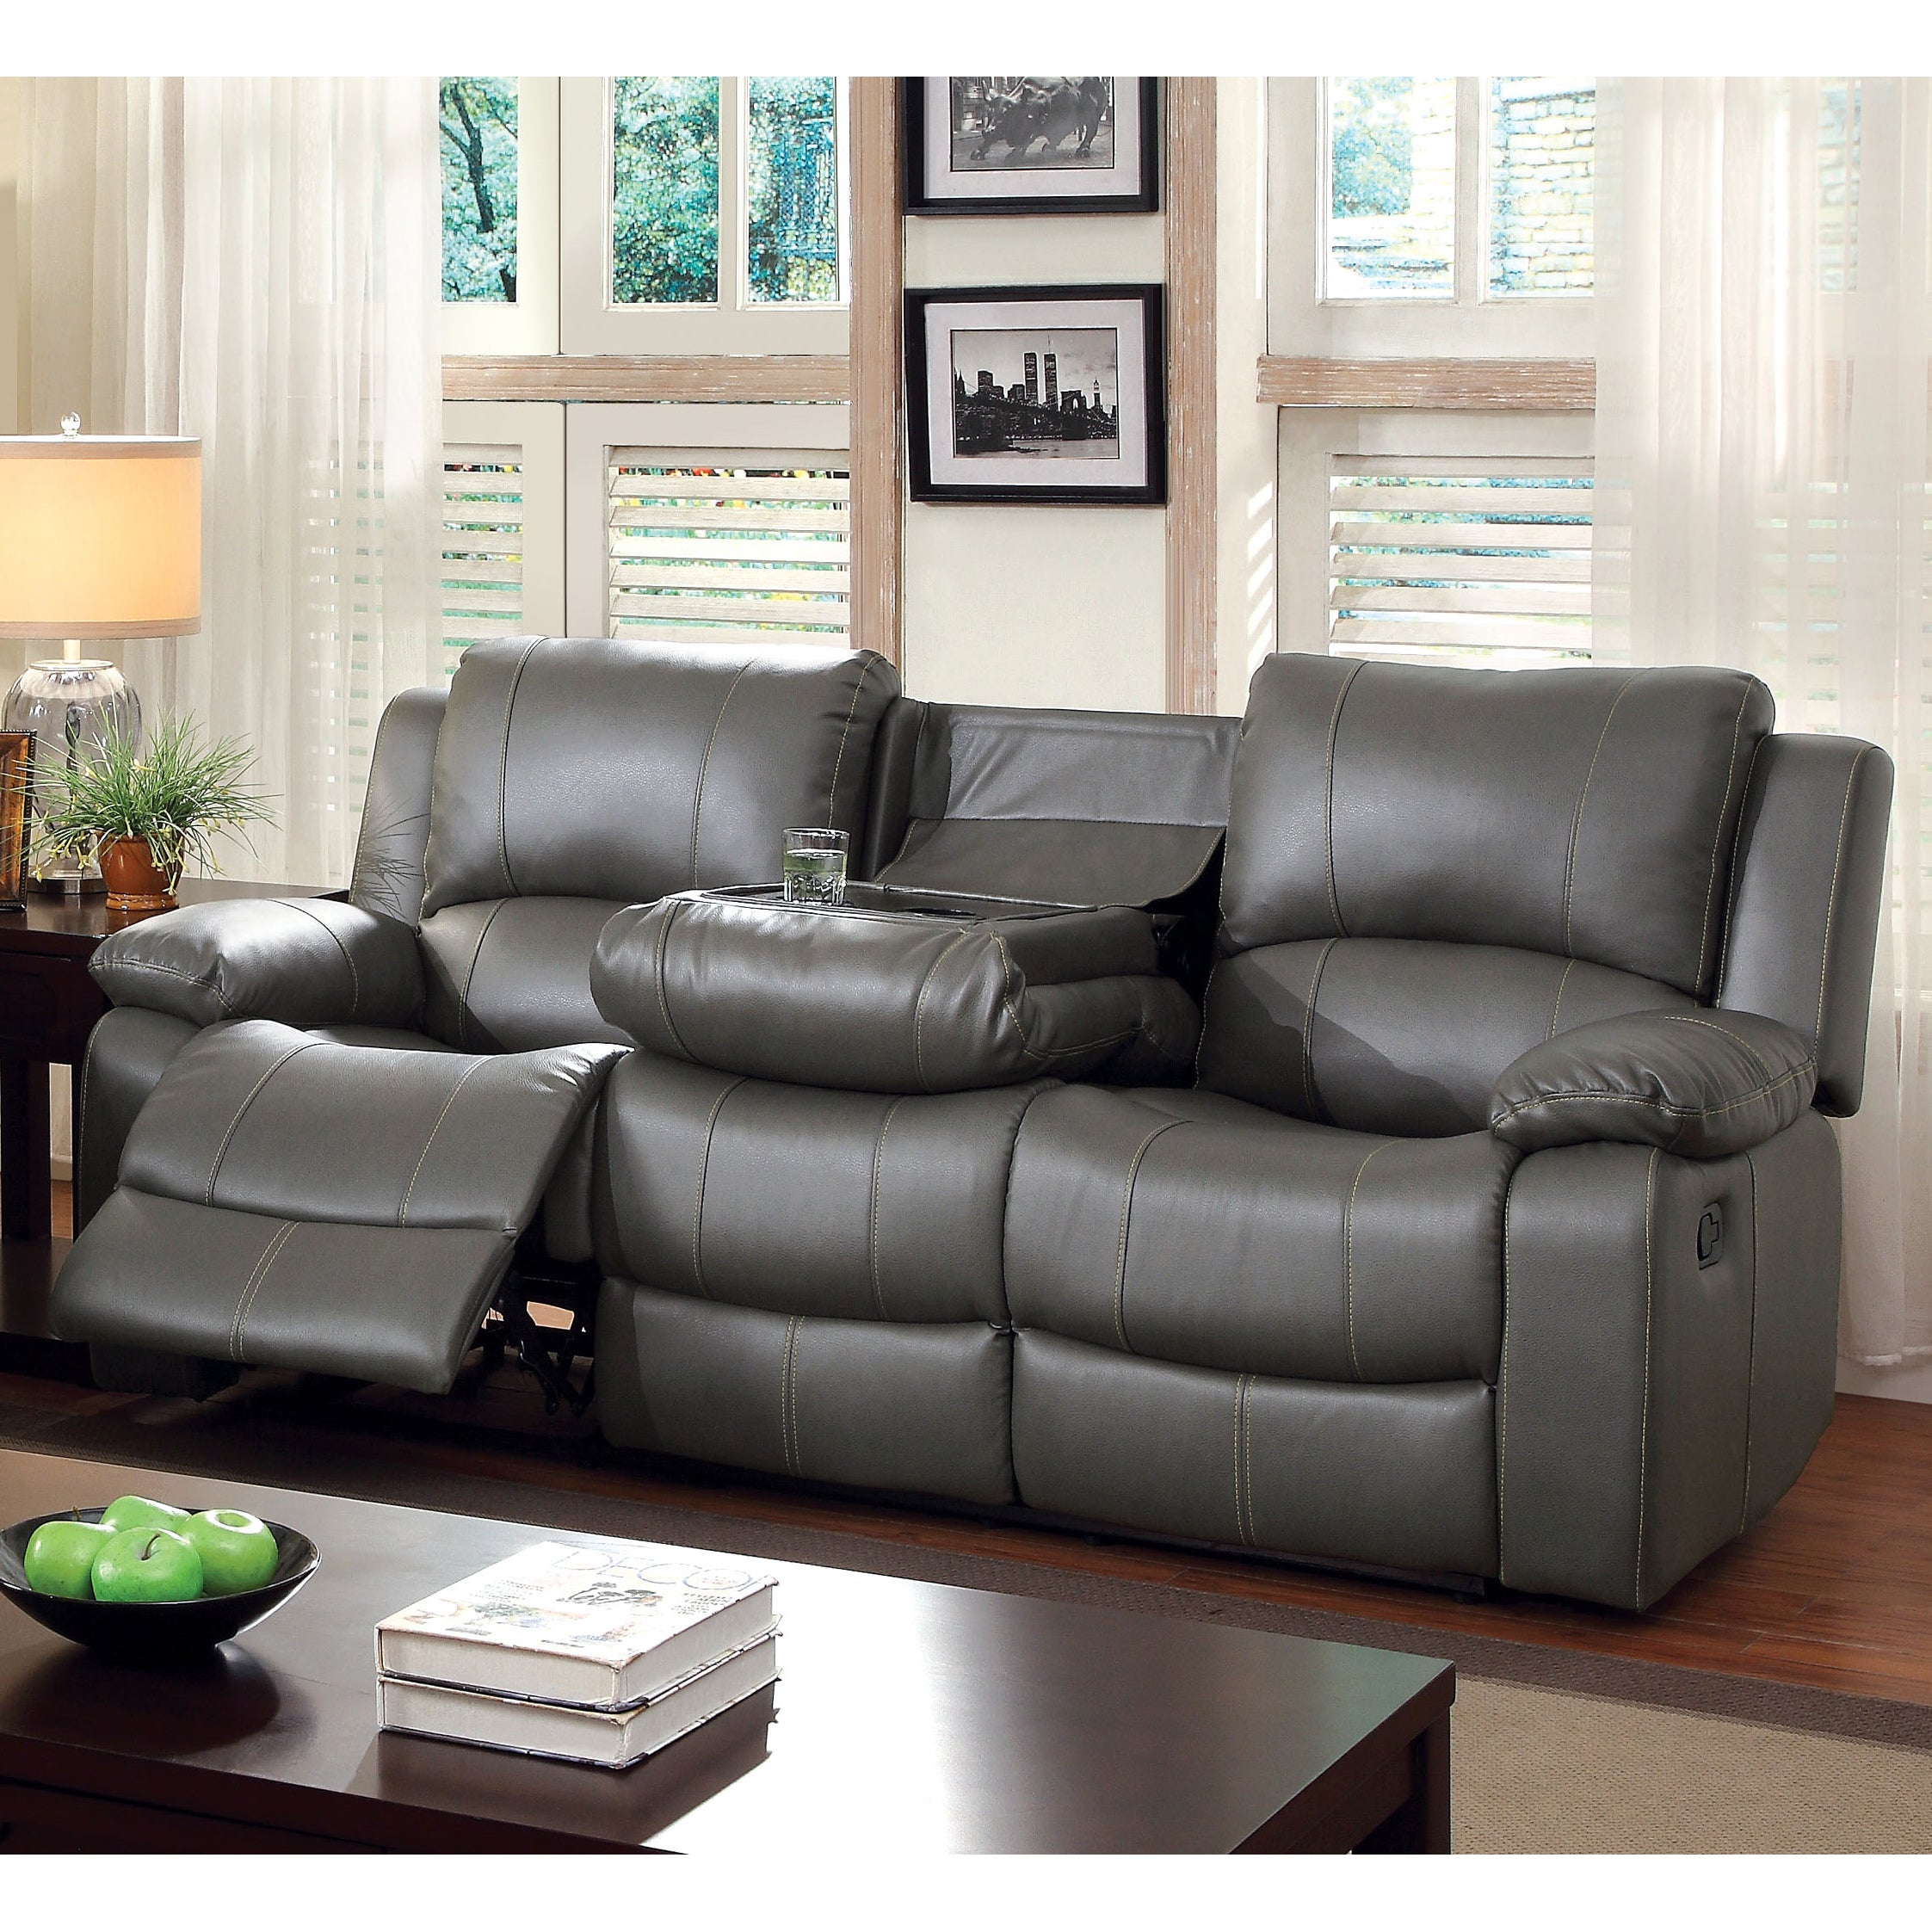 Shop Furniture Of America Rembren Grey Faux Leather Reclining Sofa